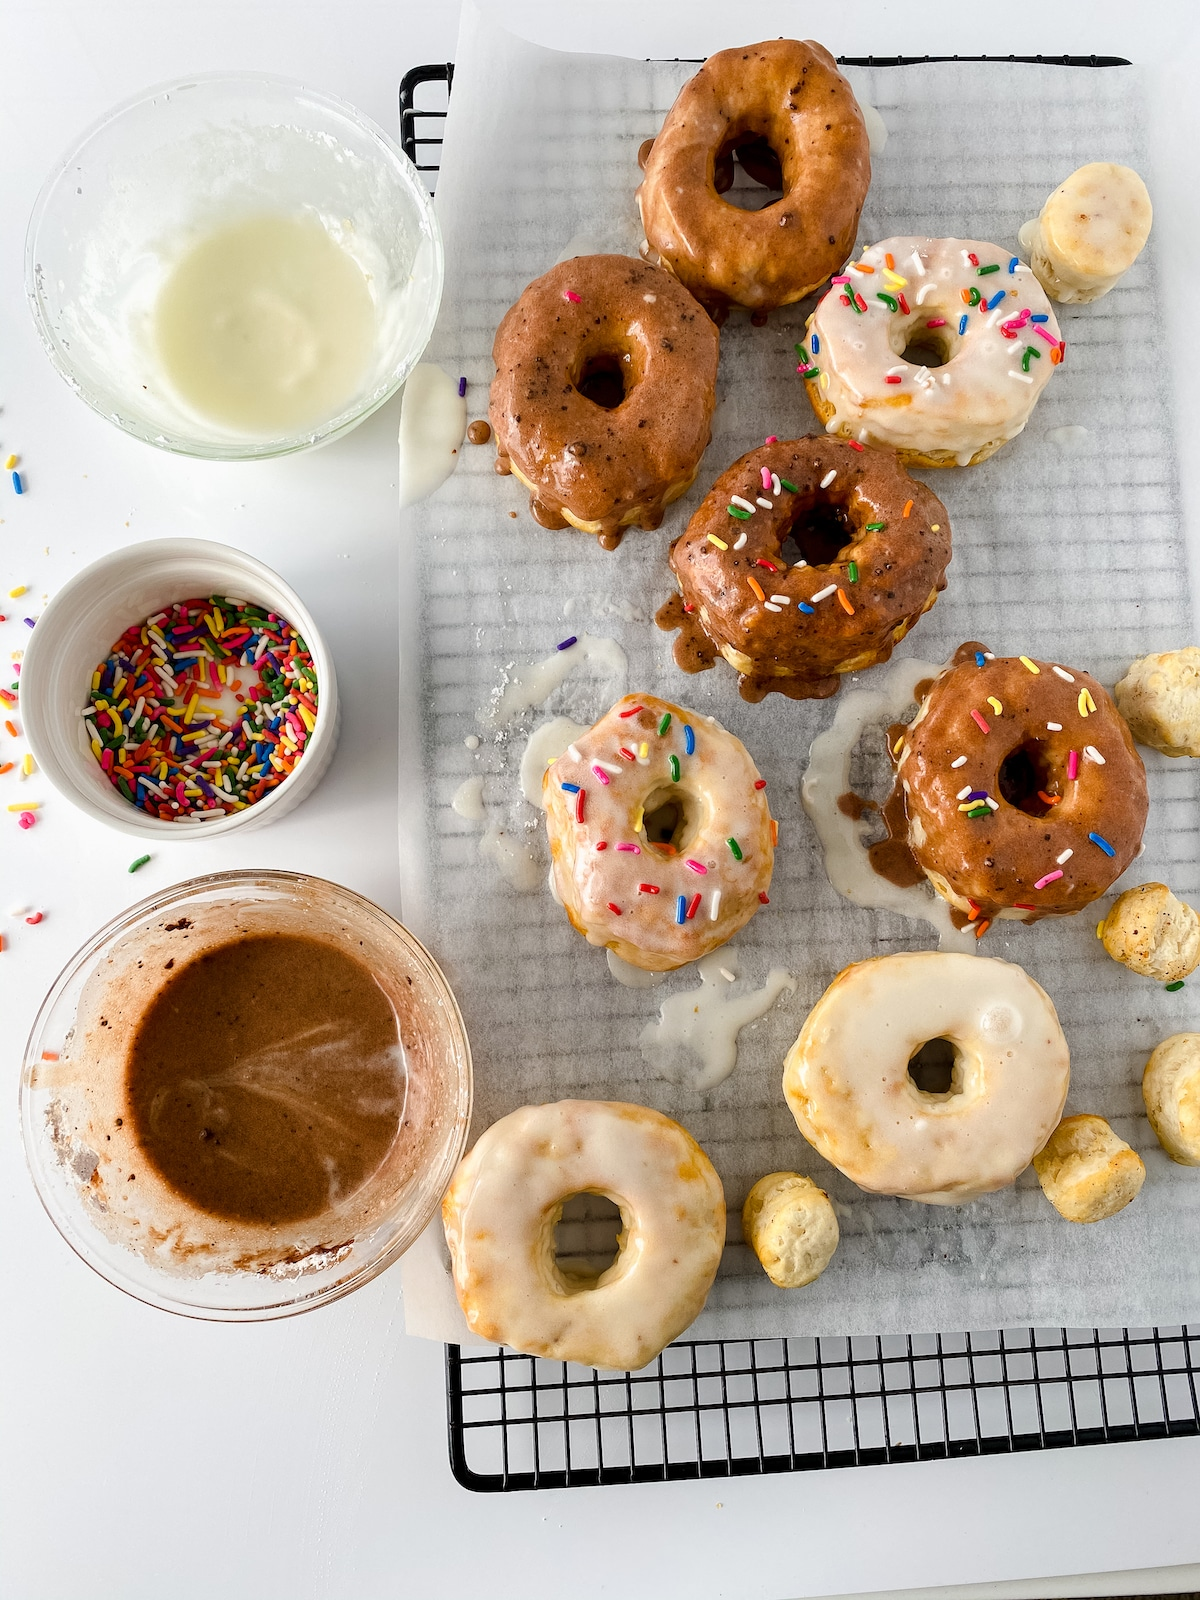 Dipping donuts in glaze